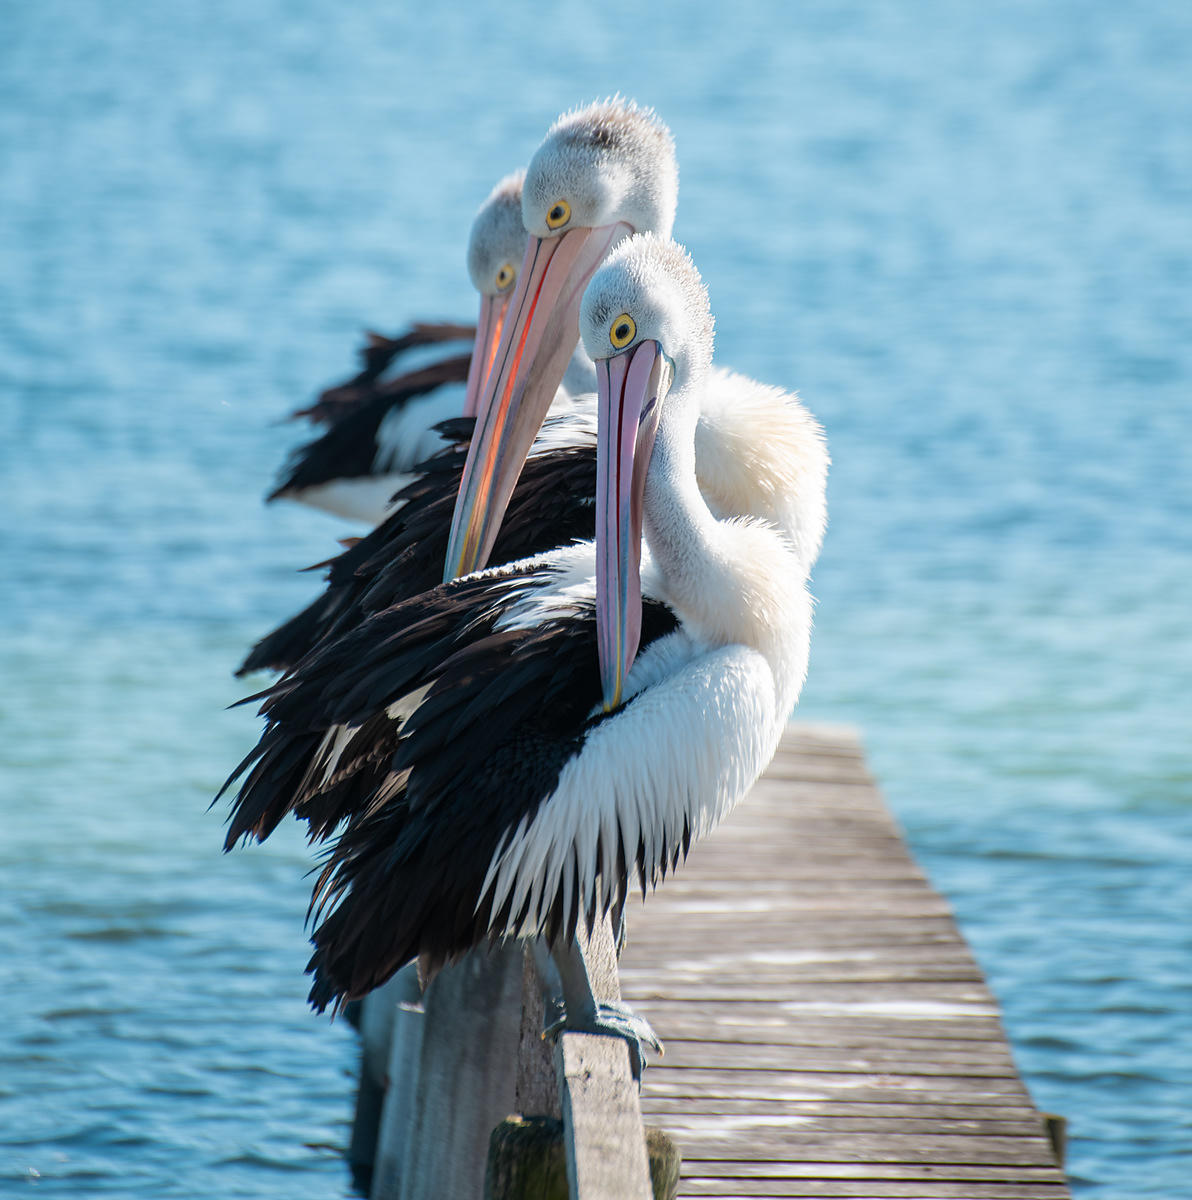 These pelicans are often seen sitting and preening themselves on a jetty in Merimbula, New South Wales, Australia. They are f...